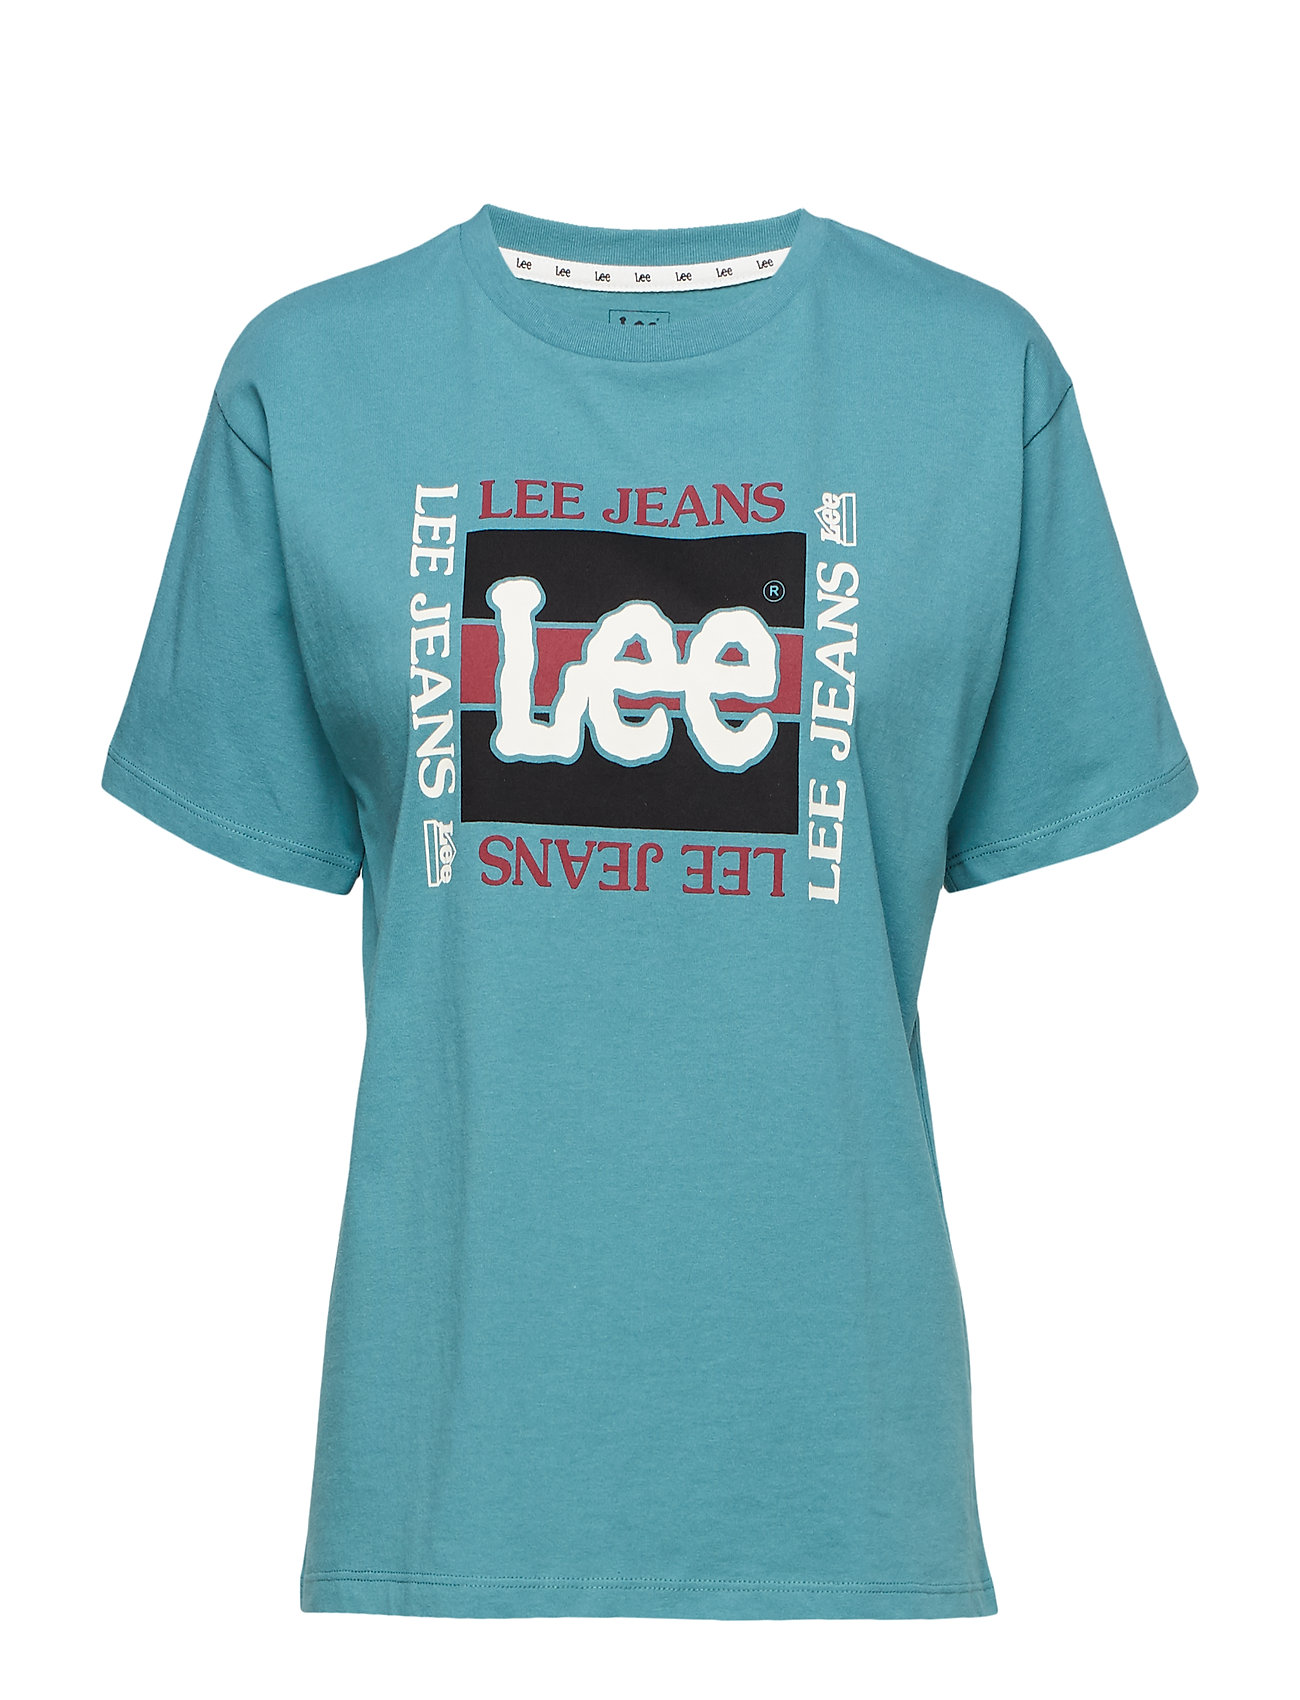 1c2aa659b5e Retro Logo Tee (Faded Green) (£17.50) - Lee Jeans -